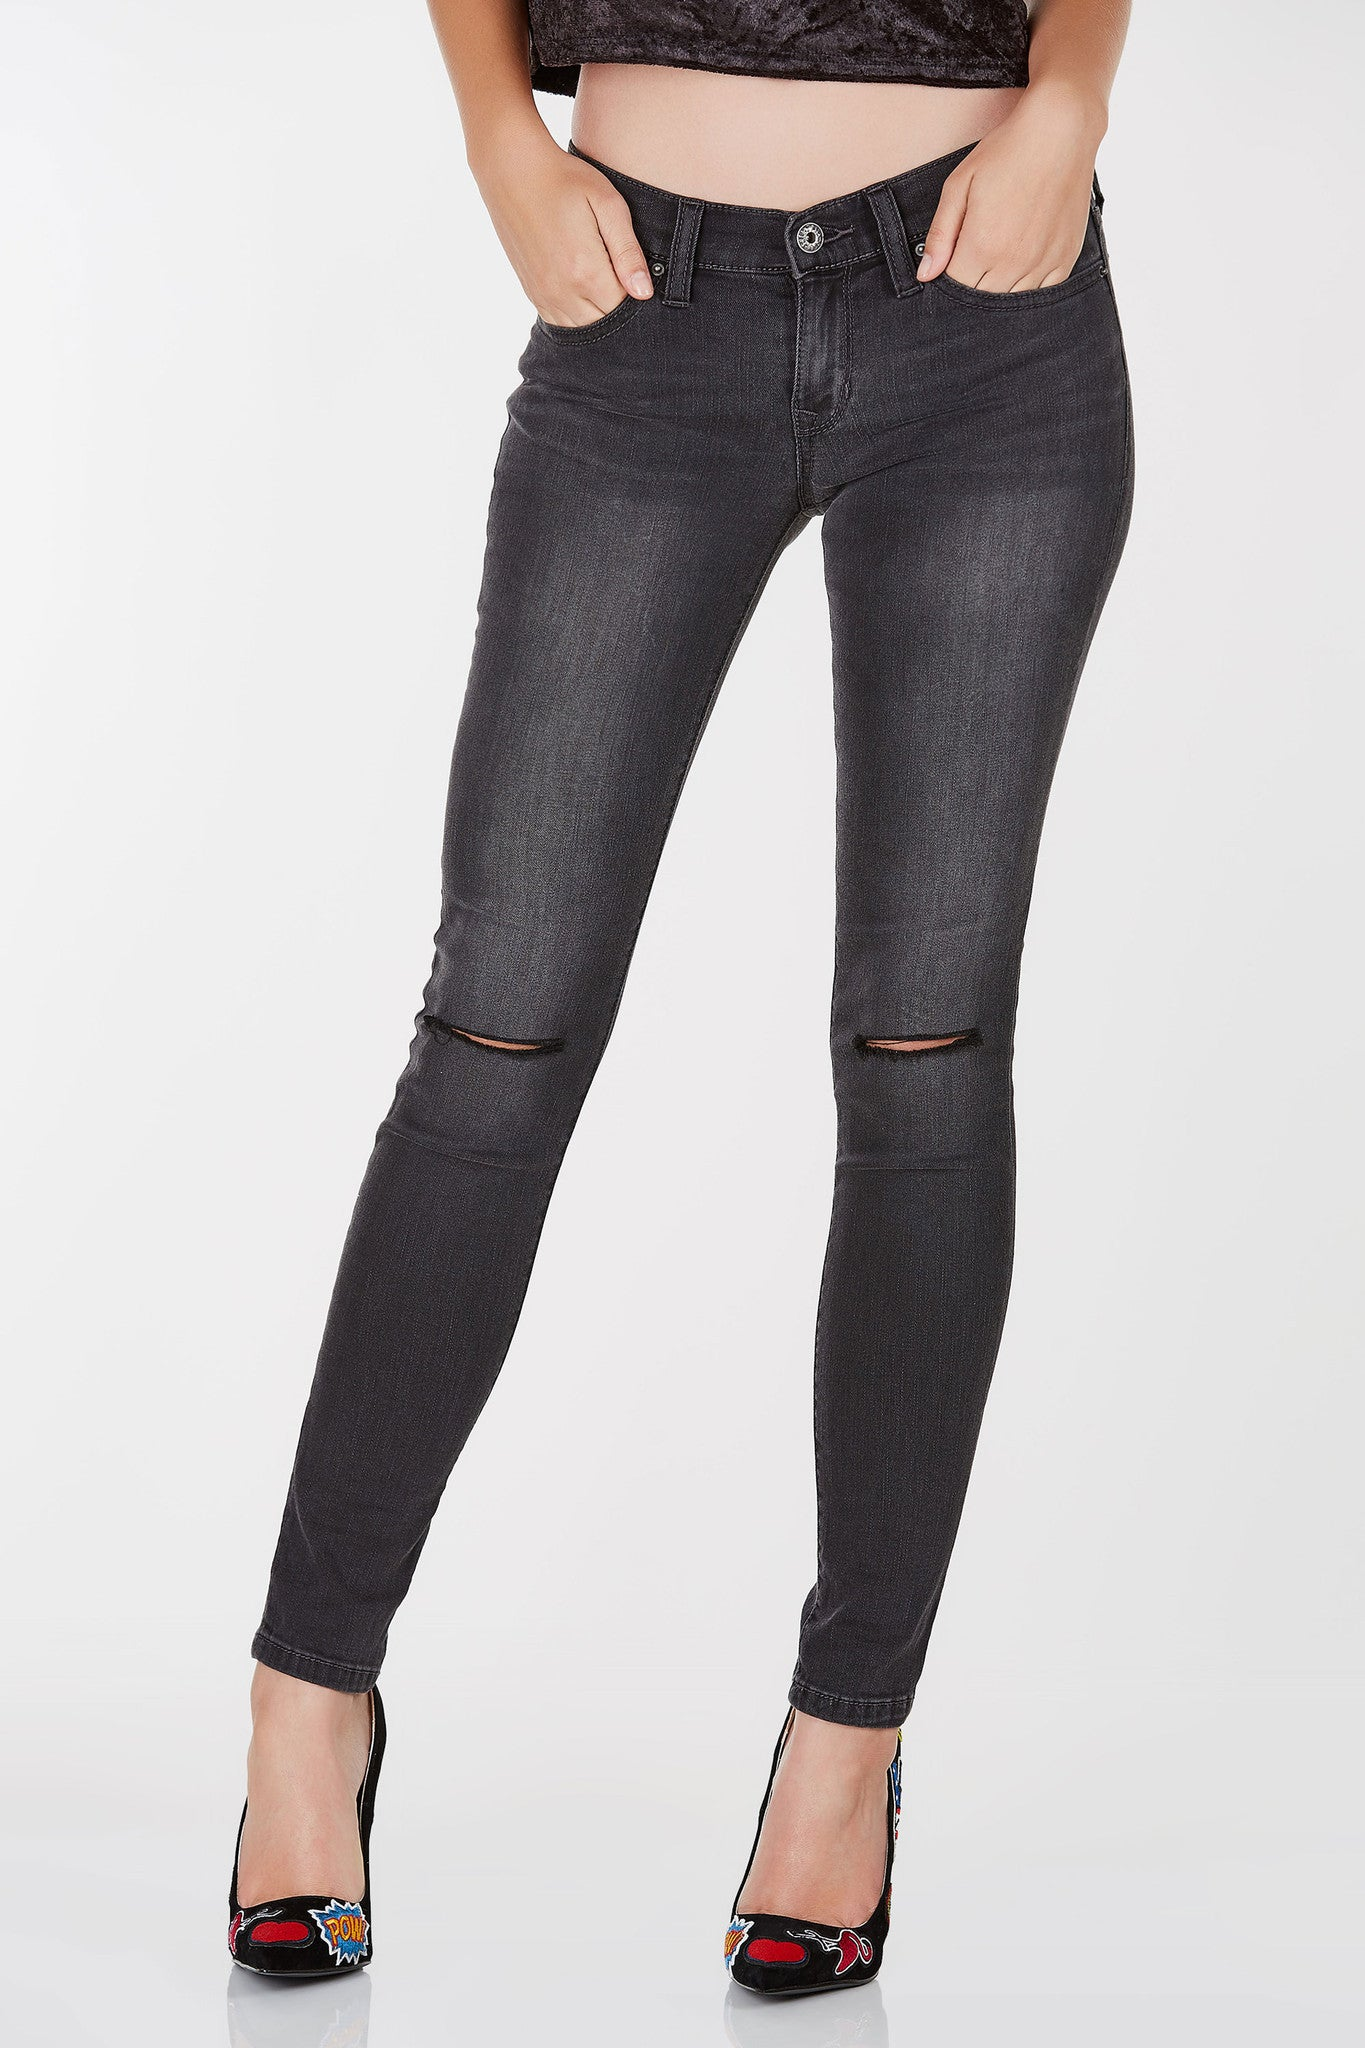 Low rise skinny jeans with slight faded wash.Knee slits with straight hem all around.